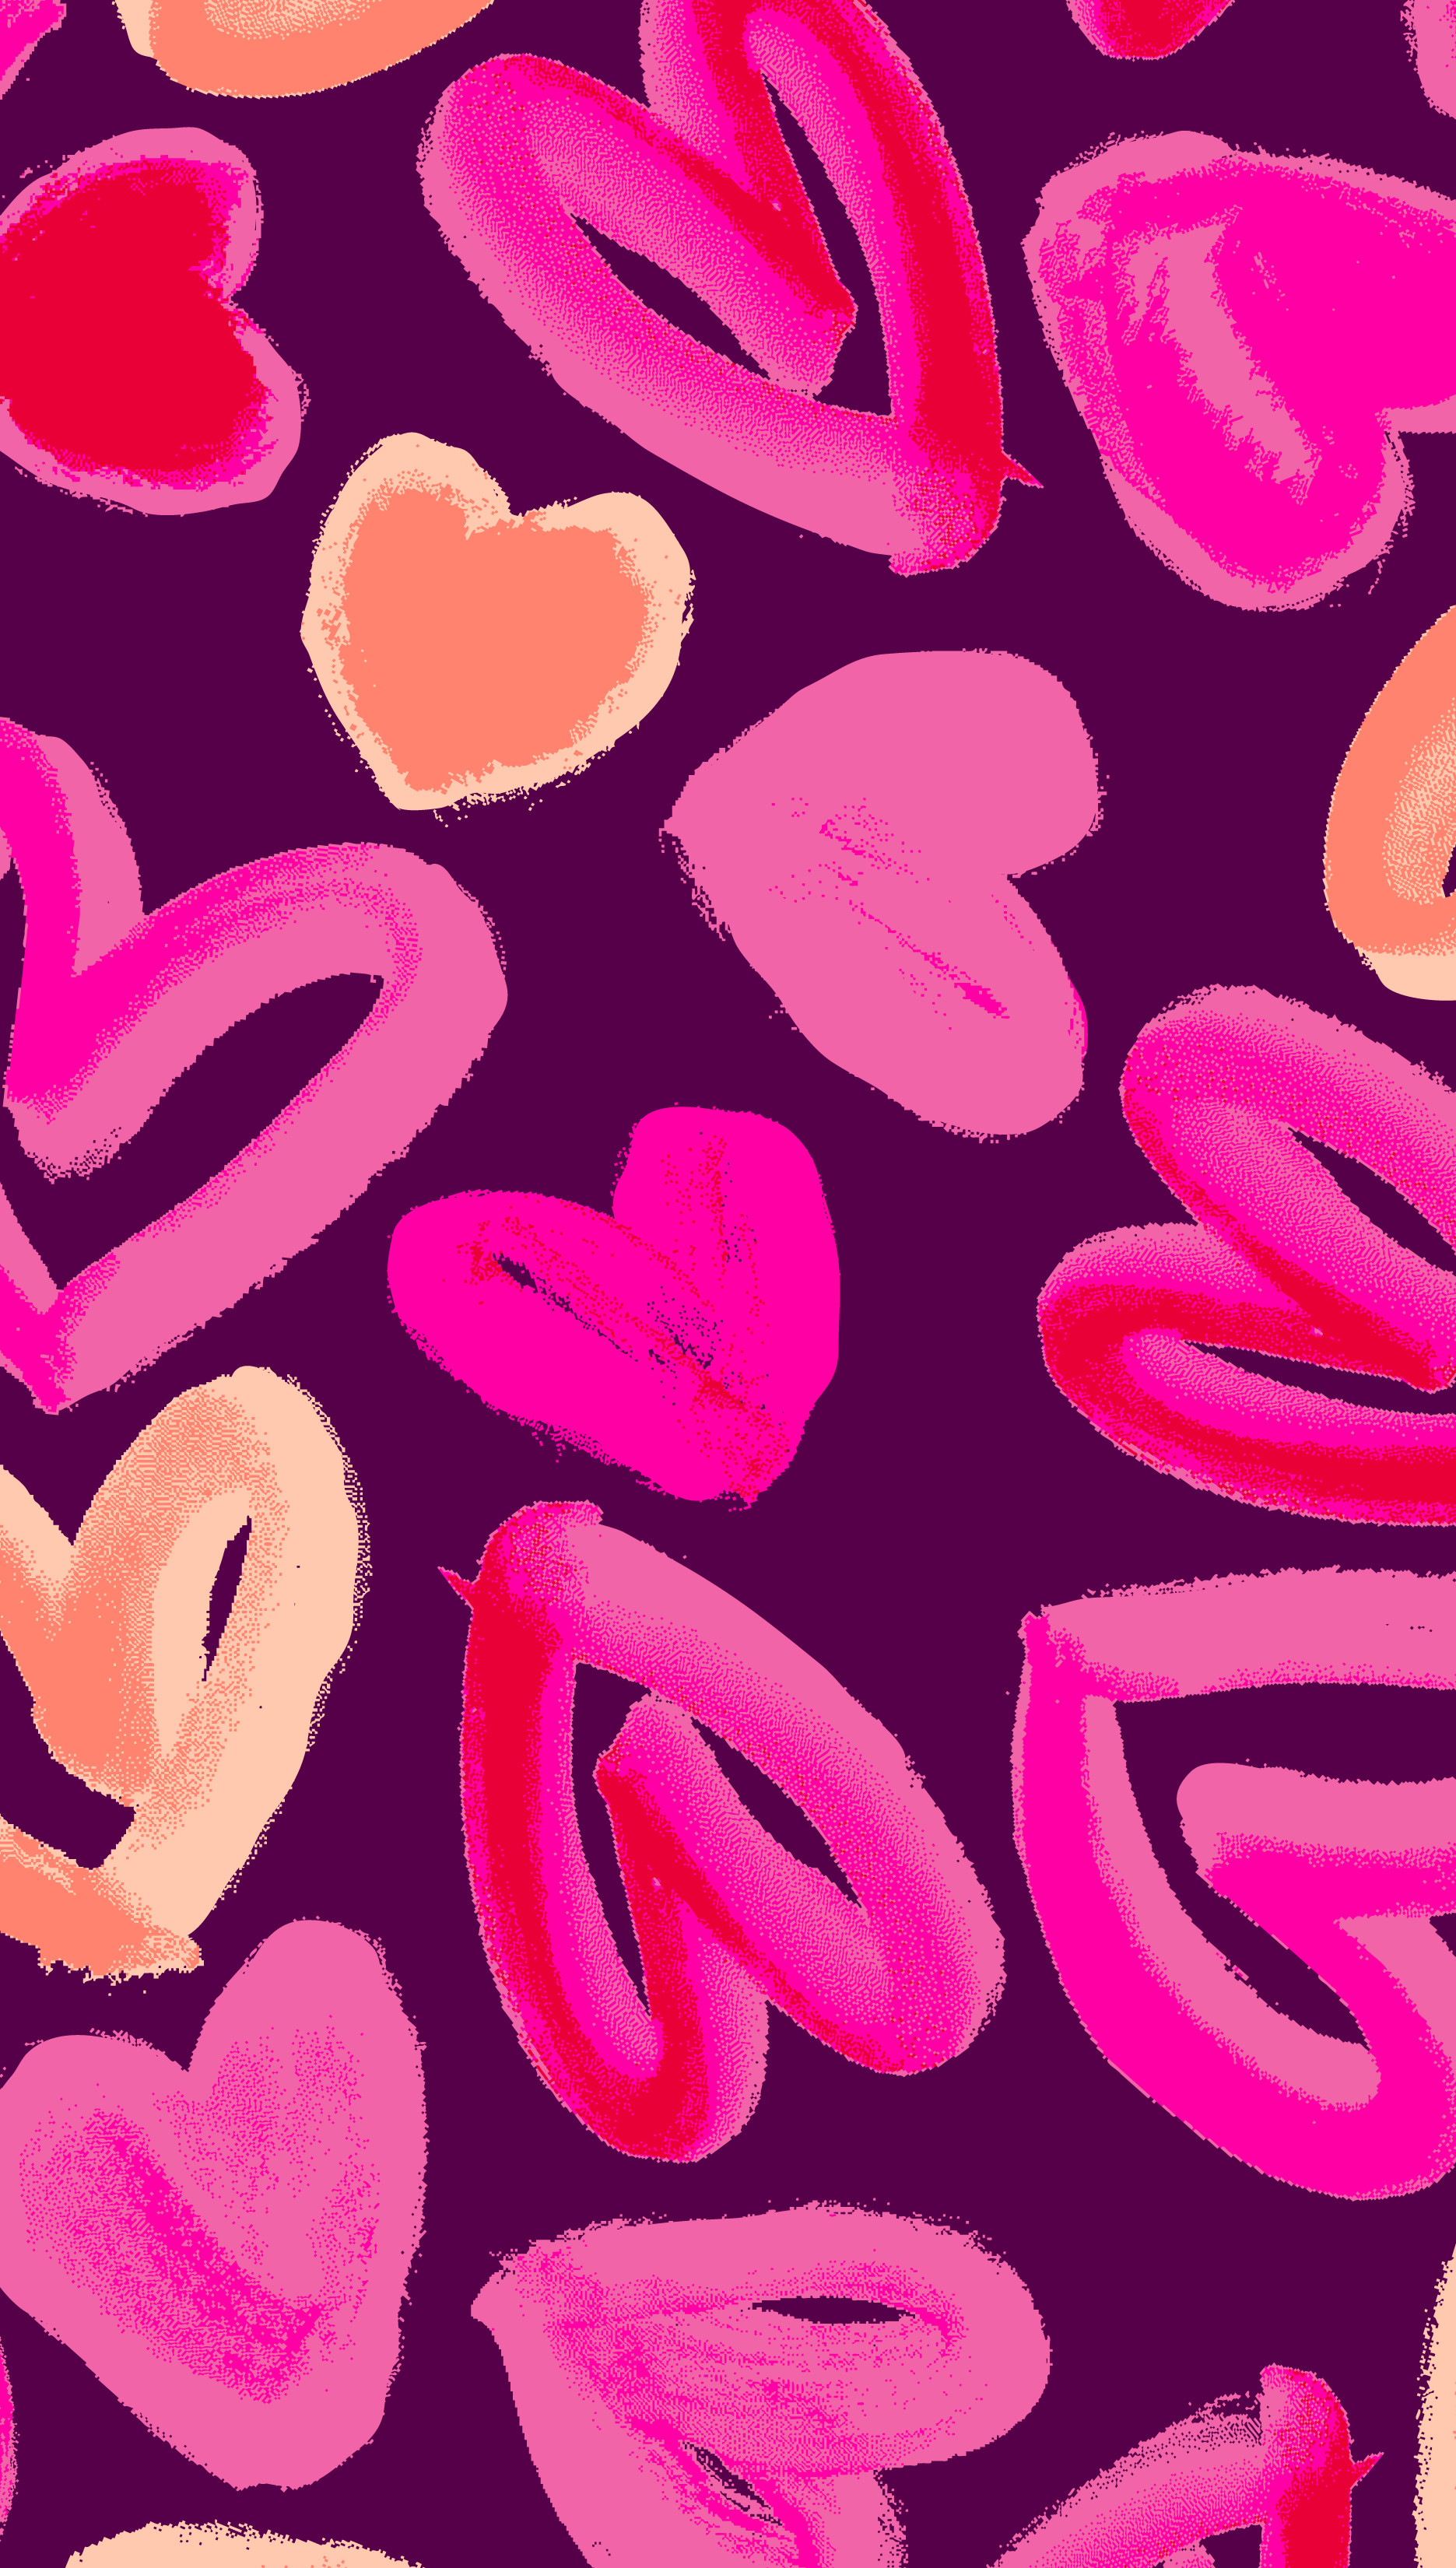 1871x3300 #HUE loves hearts. Print from the FW13 sleepwear collection. #PrintsbyHUE.  Iphone WallpapersCute WallpapersIphone BackgroundsWallpaper ...